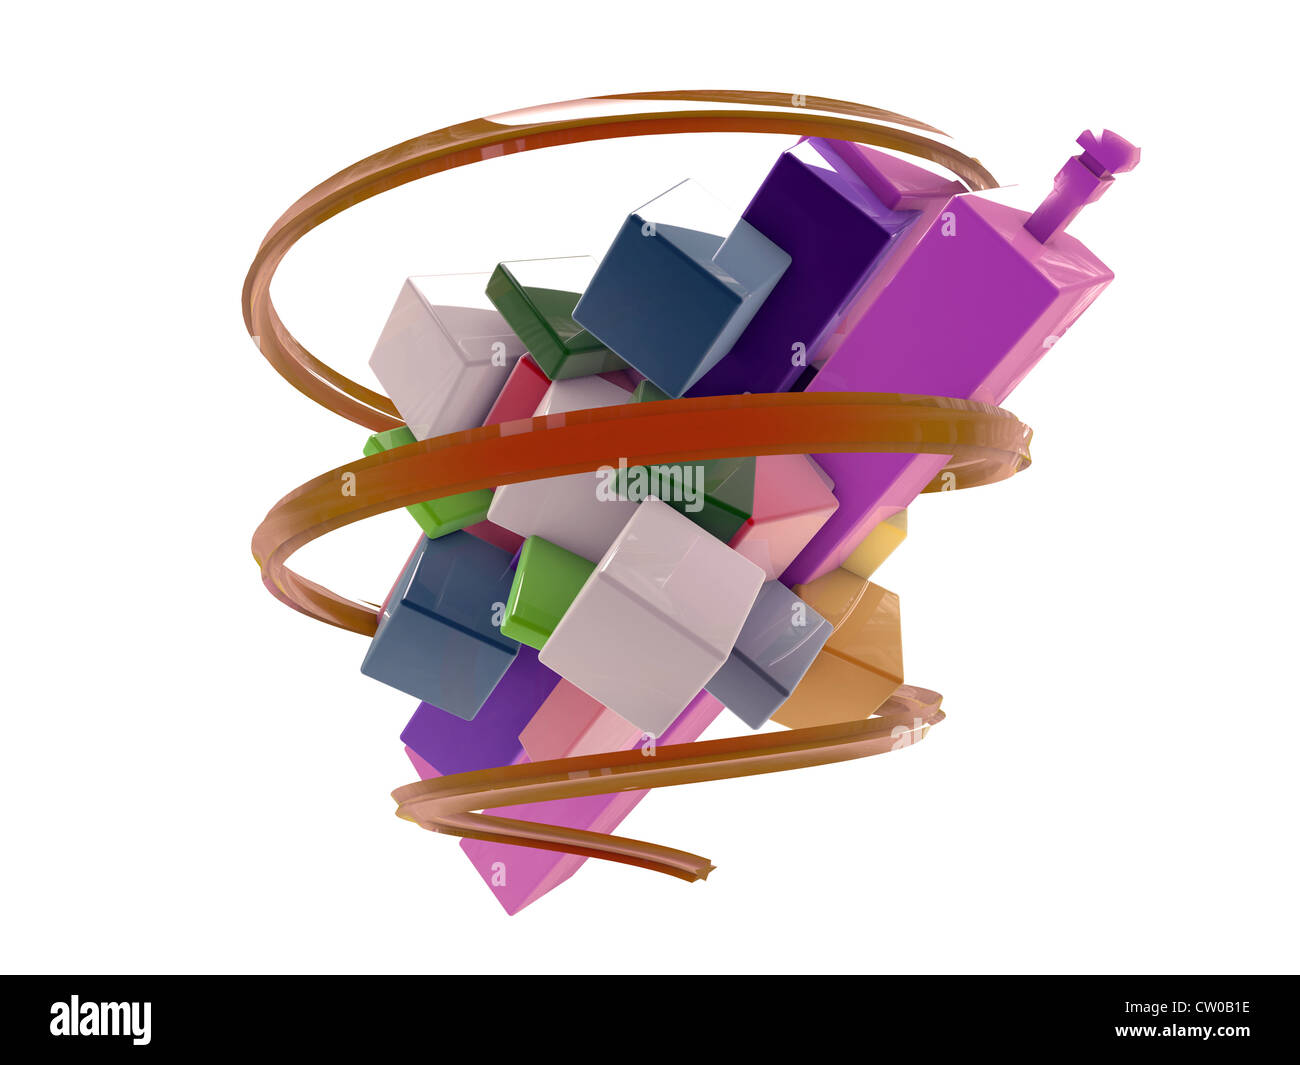 Three Boxes On Light Background Stock Photos Origami Fireworks Diagram Abstract Shape Isolated White Image